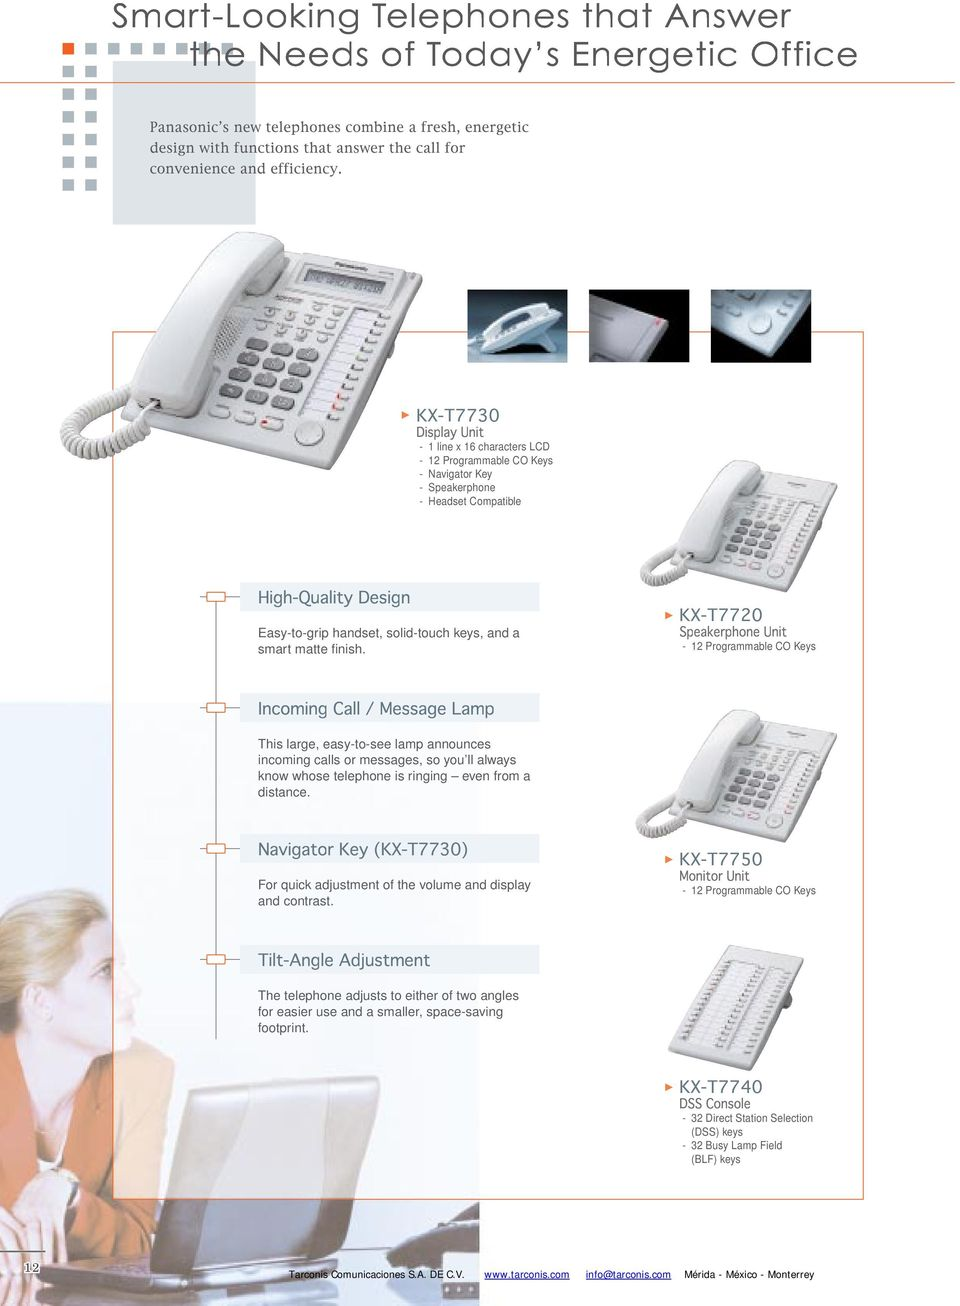 KX-T770 Speakerphone Unit - 1 Programmable CO Keys Incoming Call / Message Lamp This large, easy-to-see lamp announces incoming calls or messages, so you ll always know whose telephone is ringing